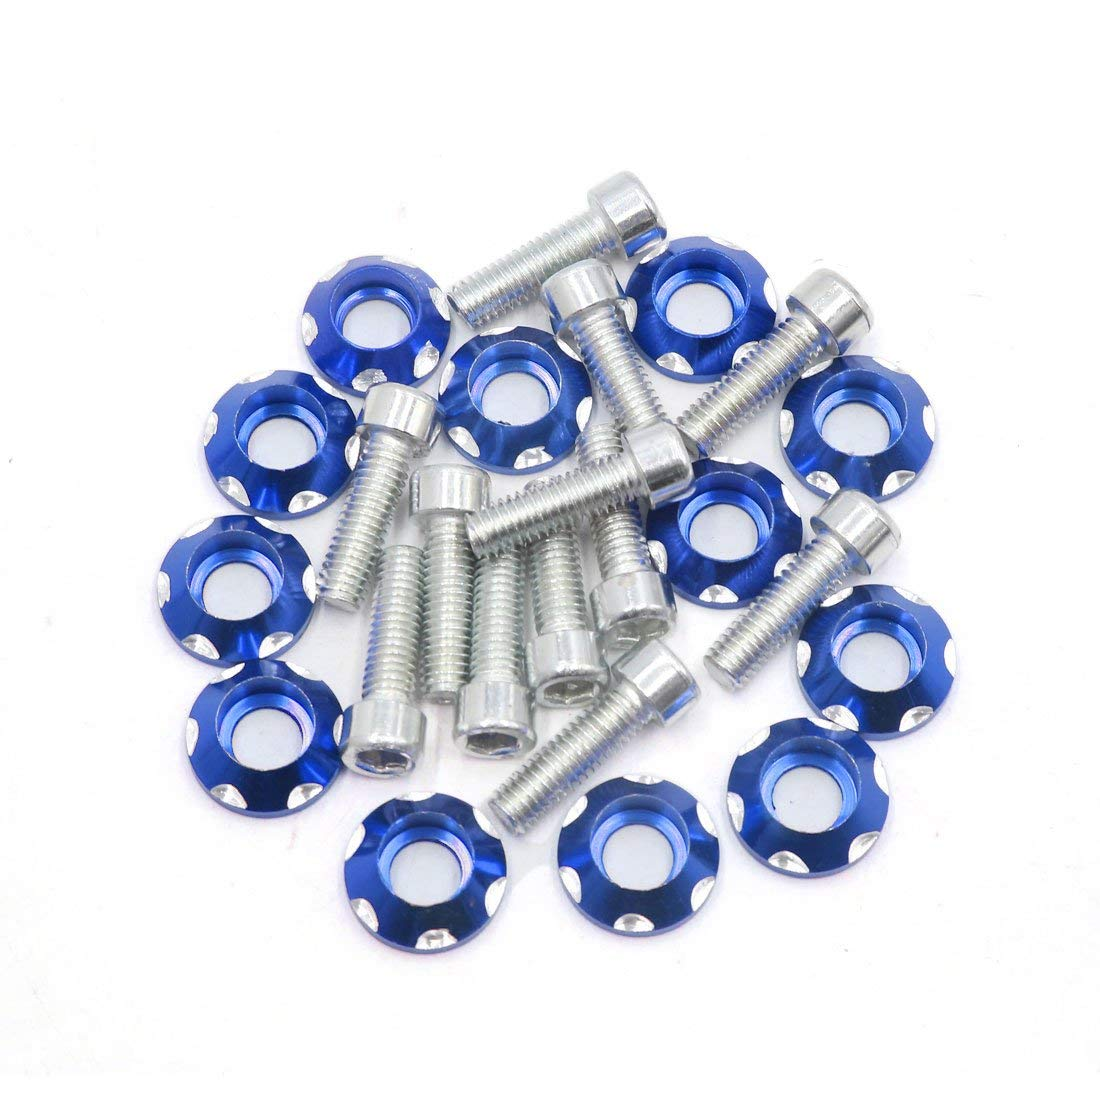 Piece-50 Hard-to-Find Fastener 014973151874 EQ Code Square Washers 5//8 x 3x3 x1//4